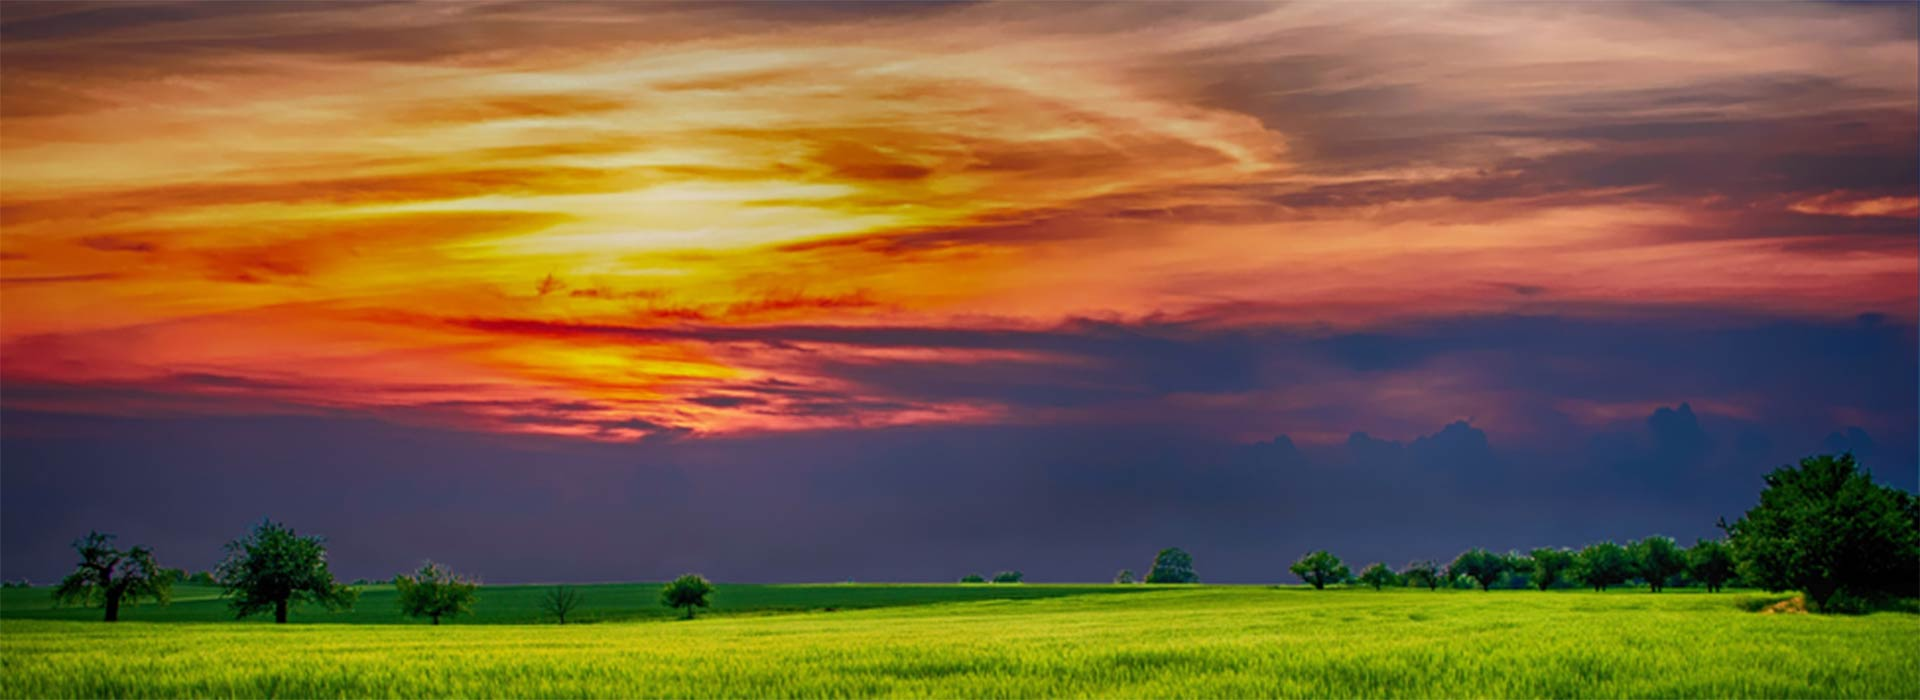 david-london-agriculture-horizon